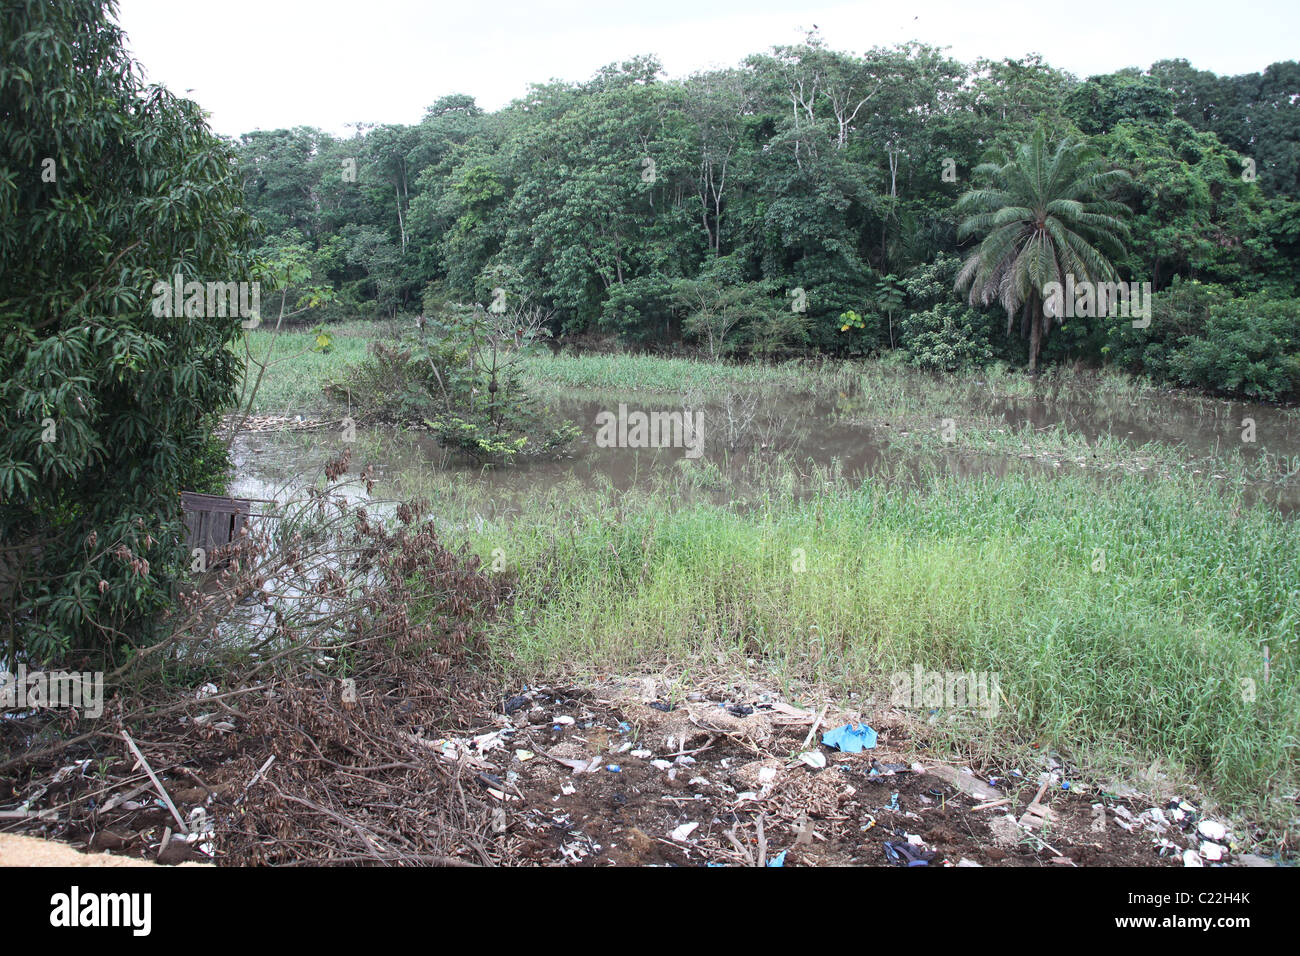 Polluted River in the Amazon - Stock Image